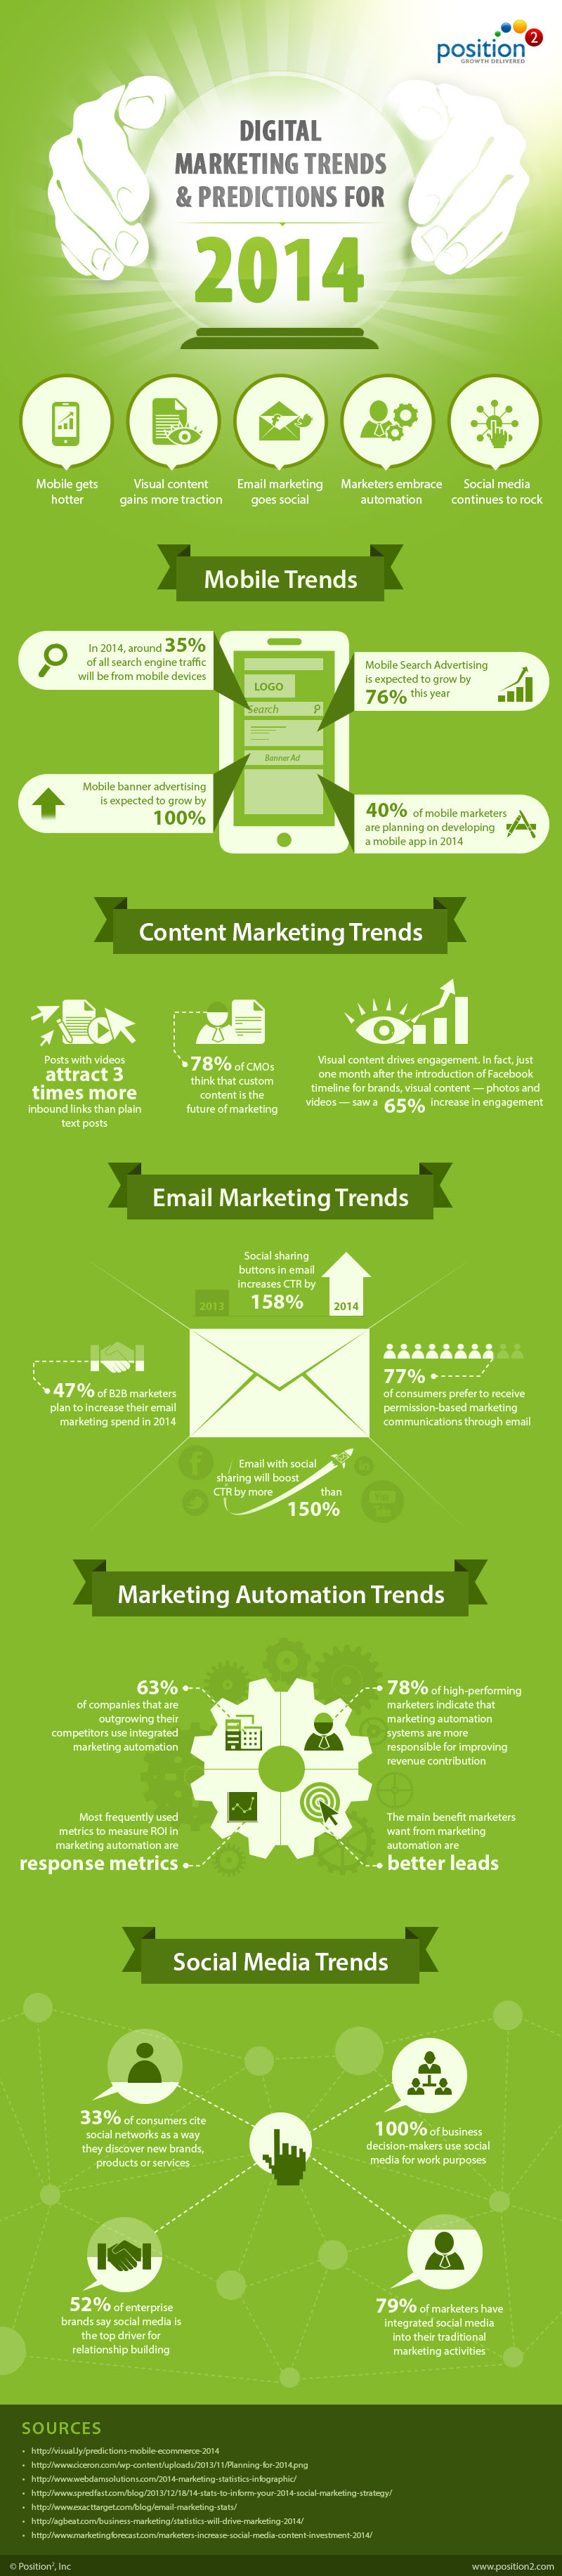 19 Mobile, Content, Email, Social Media, And Marketing Automation Stats For 2014 - infographic